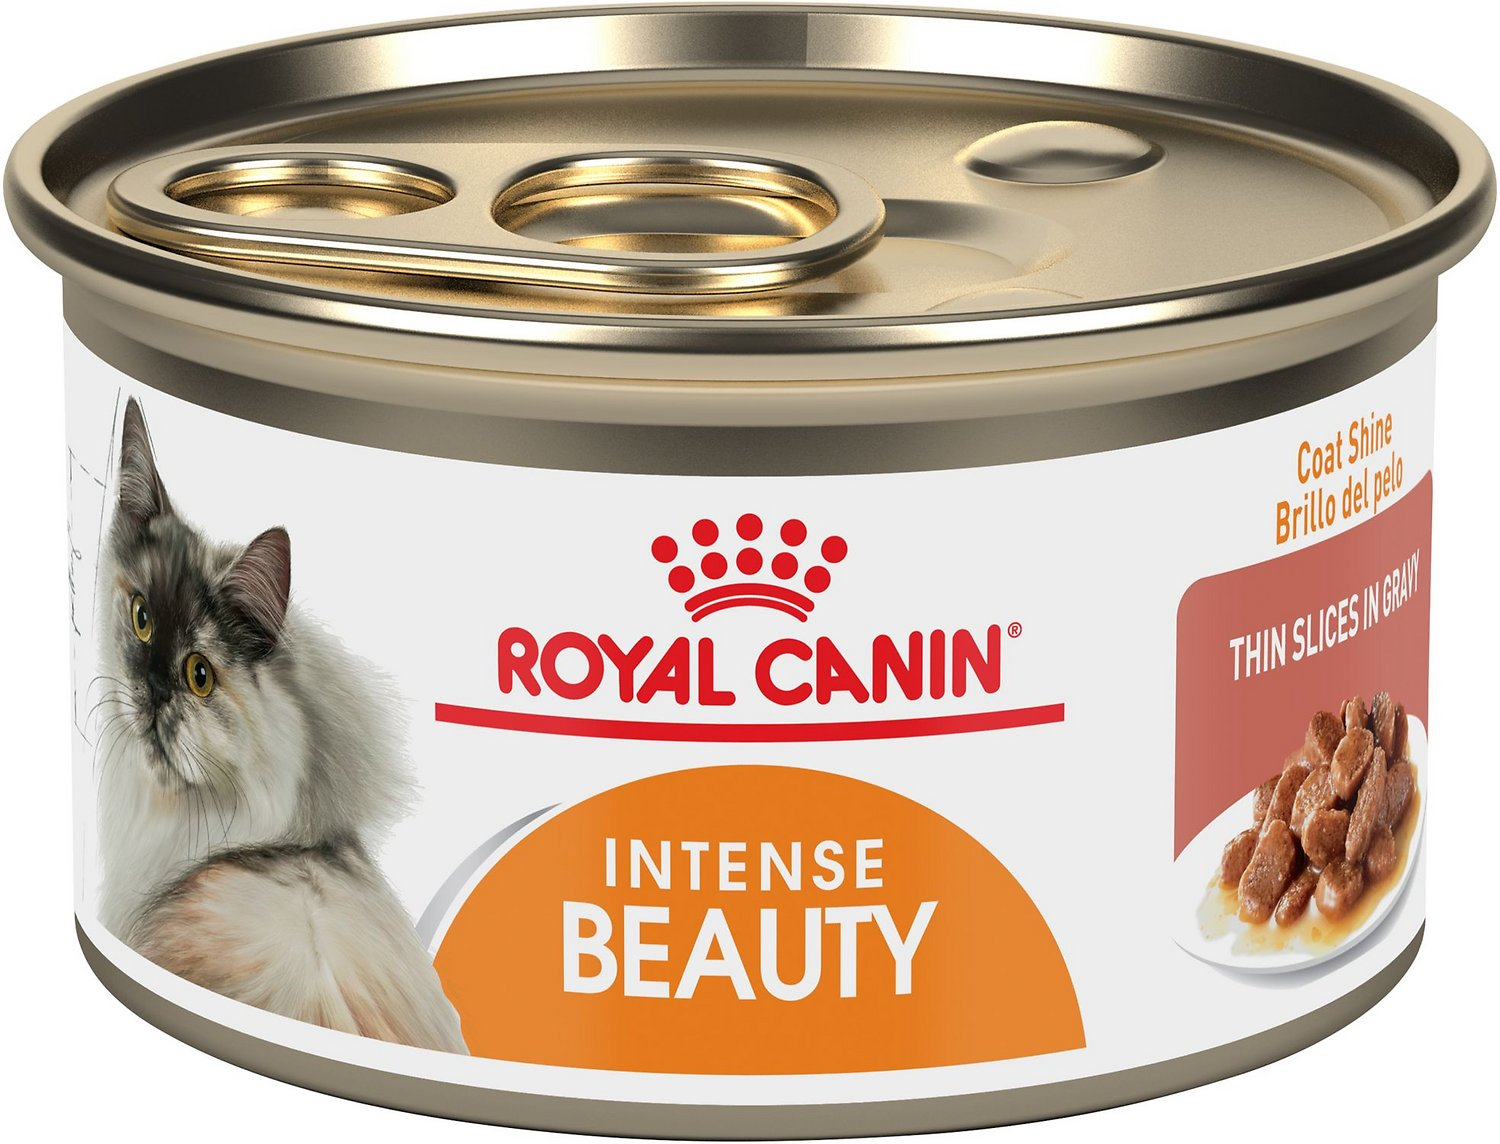 Royal Canin Intense Beauty - Alimento Húmedo para Gatos